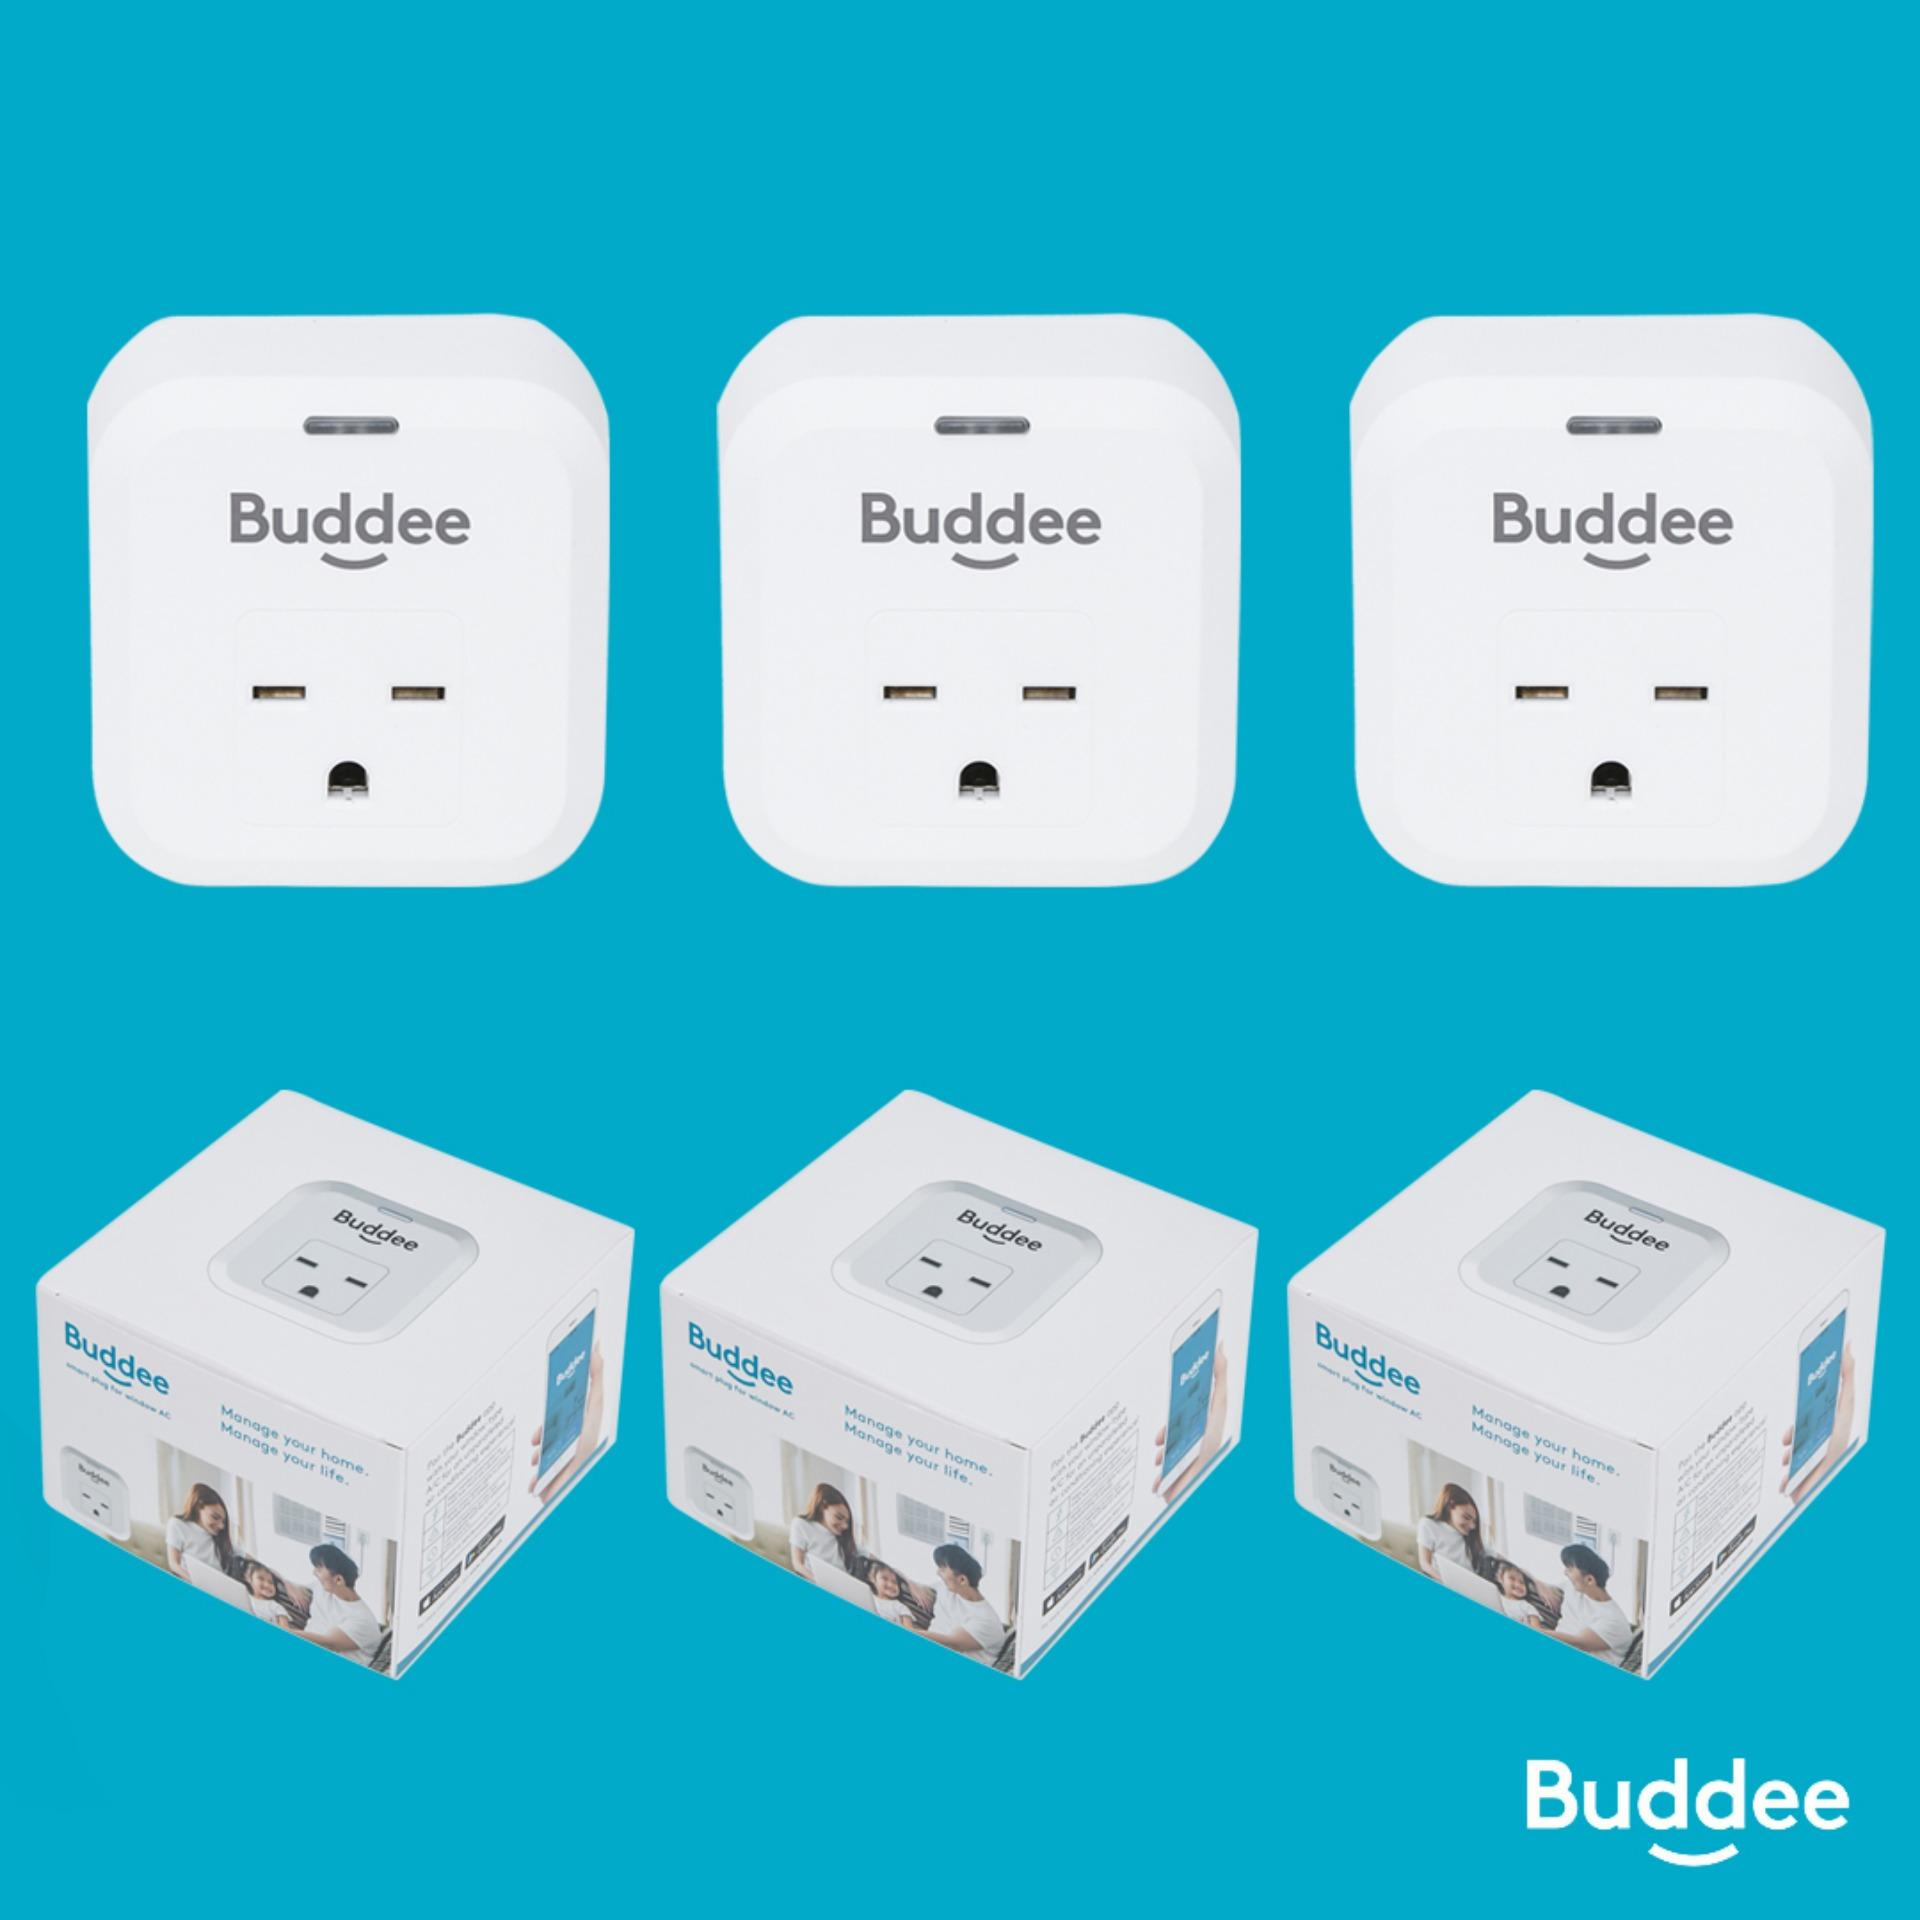 Aircon Parts For Sale Air Conditioner Prices Brands 2 Speed Swamp Cooler Motor Wiring Diagram Buddee Ac Smart Plug Wifi And Bluetooth Enabled Device Home Free Ios